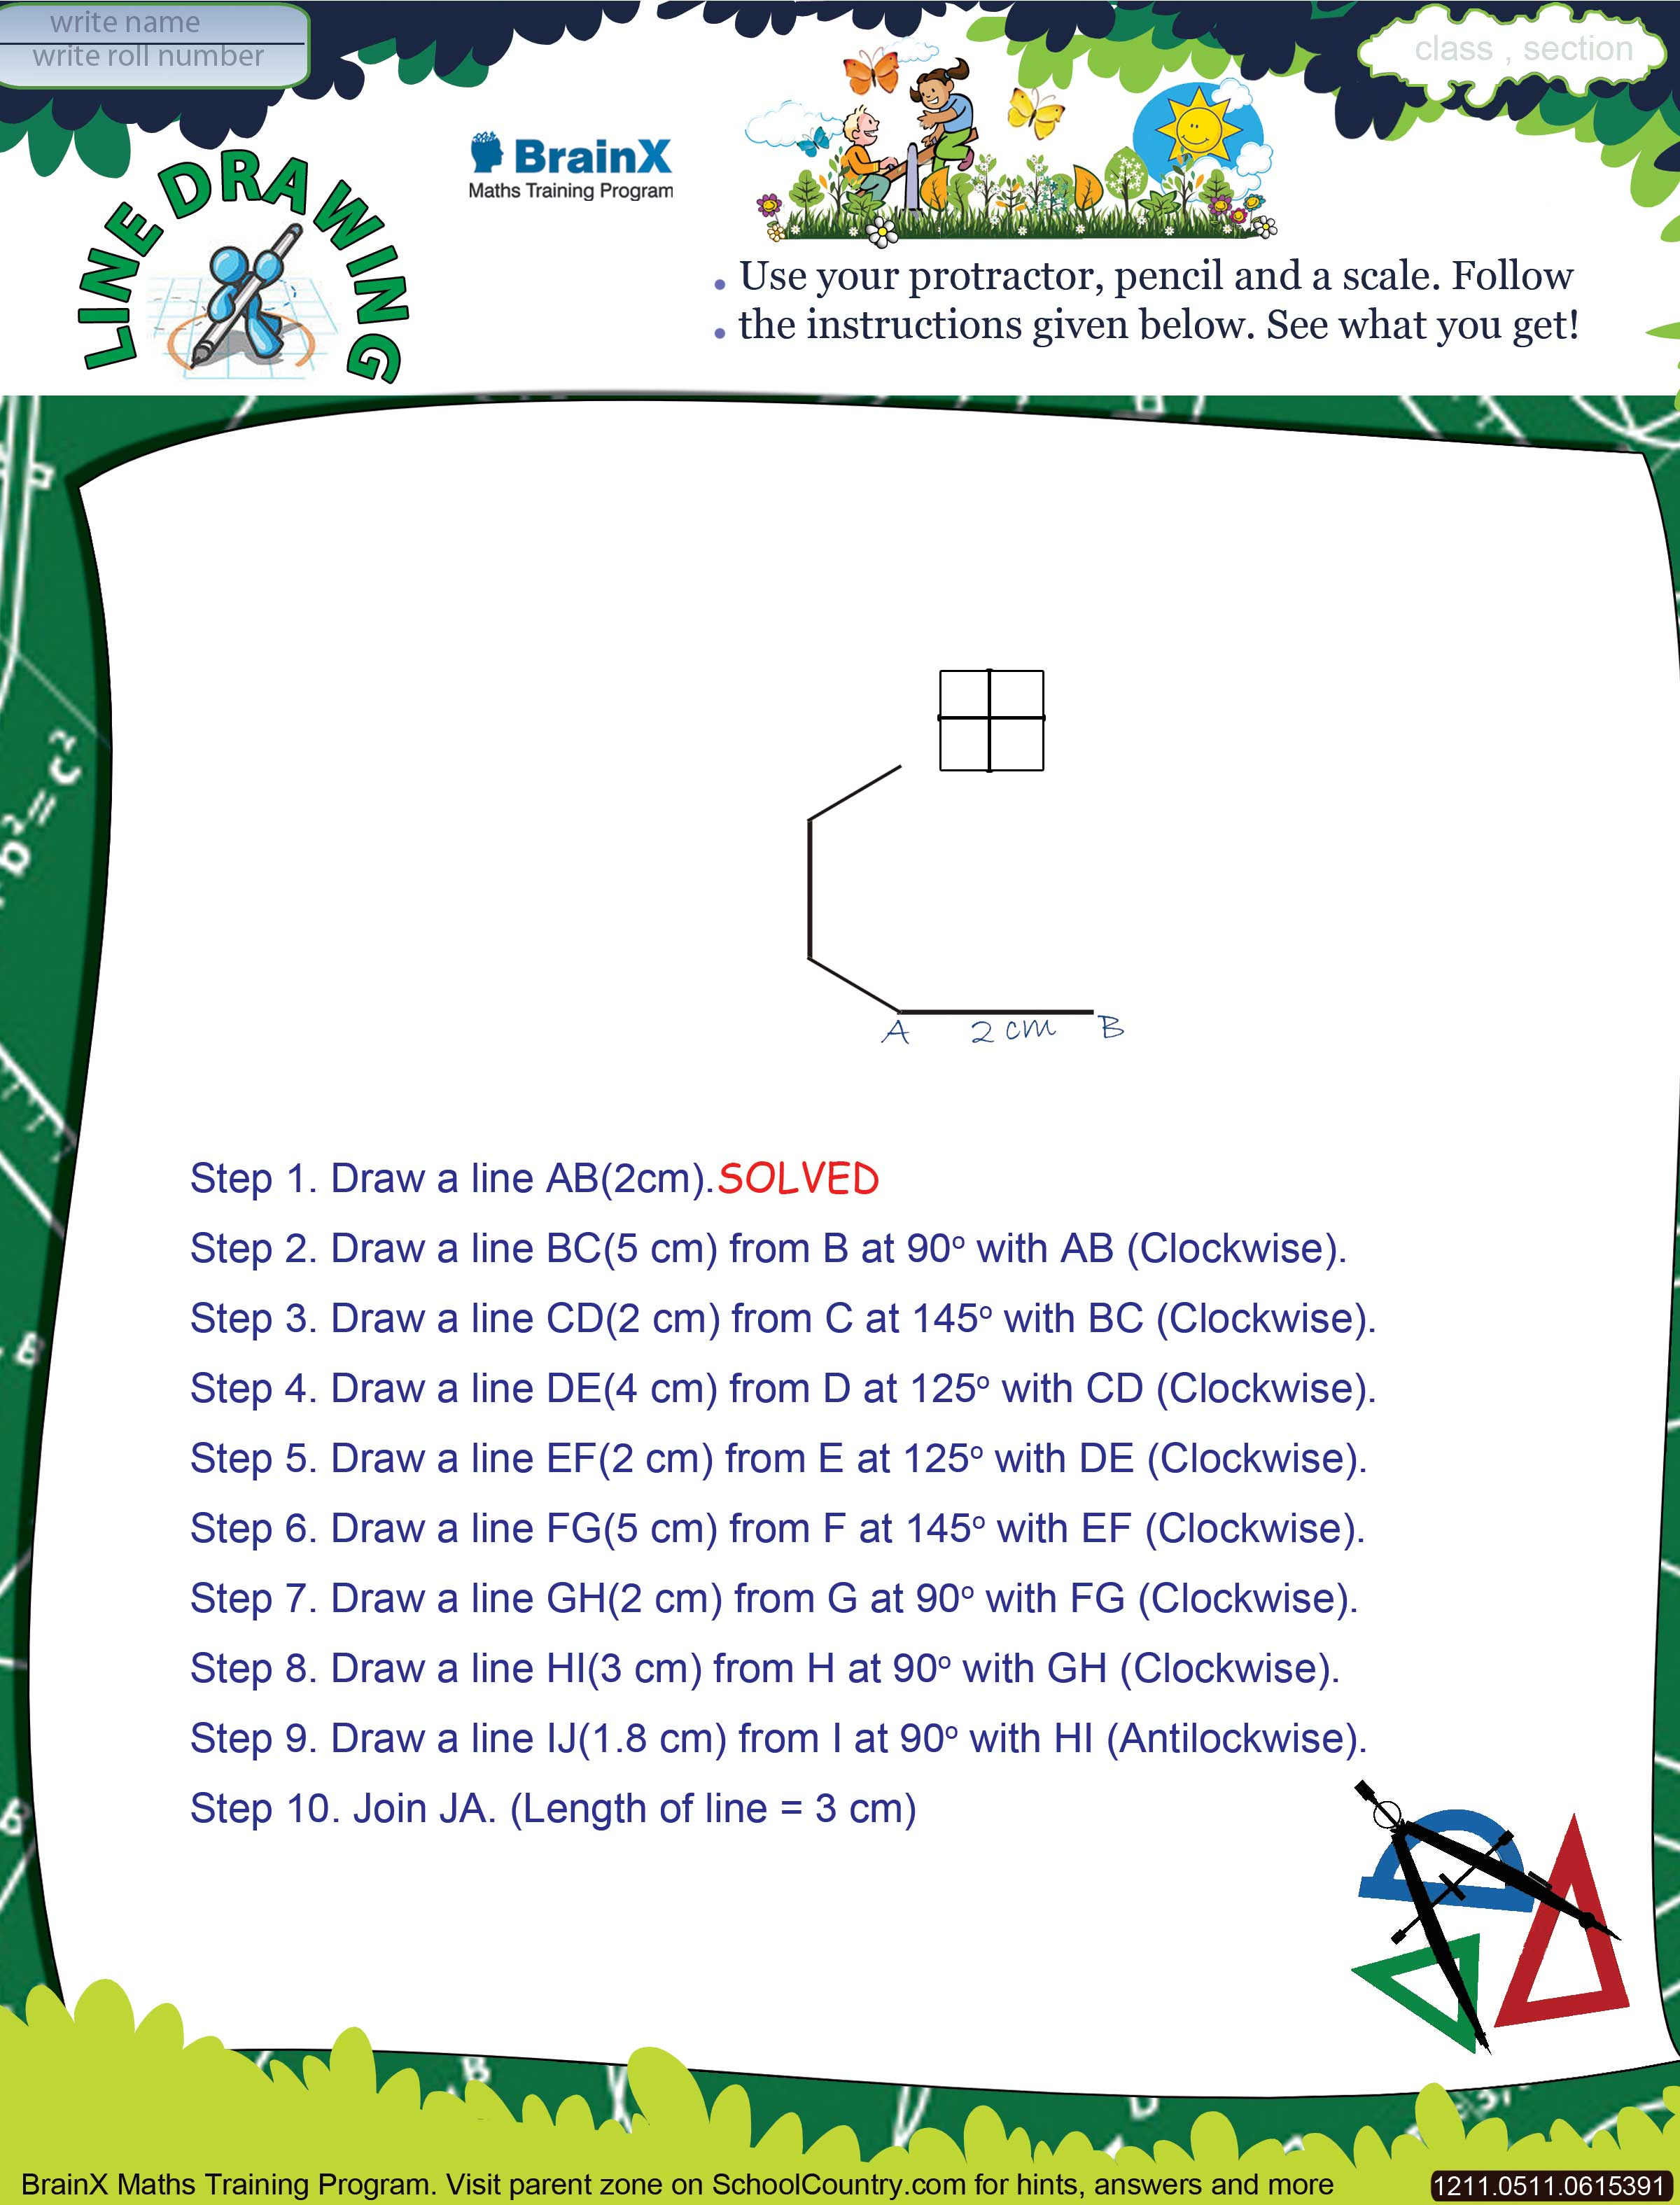 Worksheet Fun Worksheets For 5th Grade Grass Fedjp